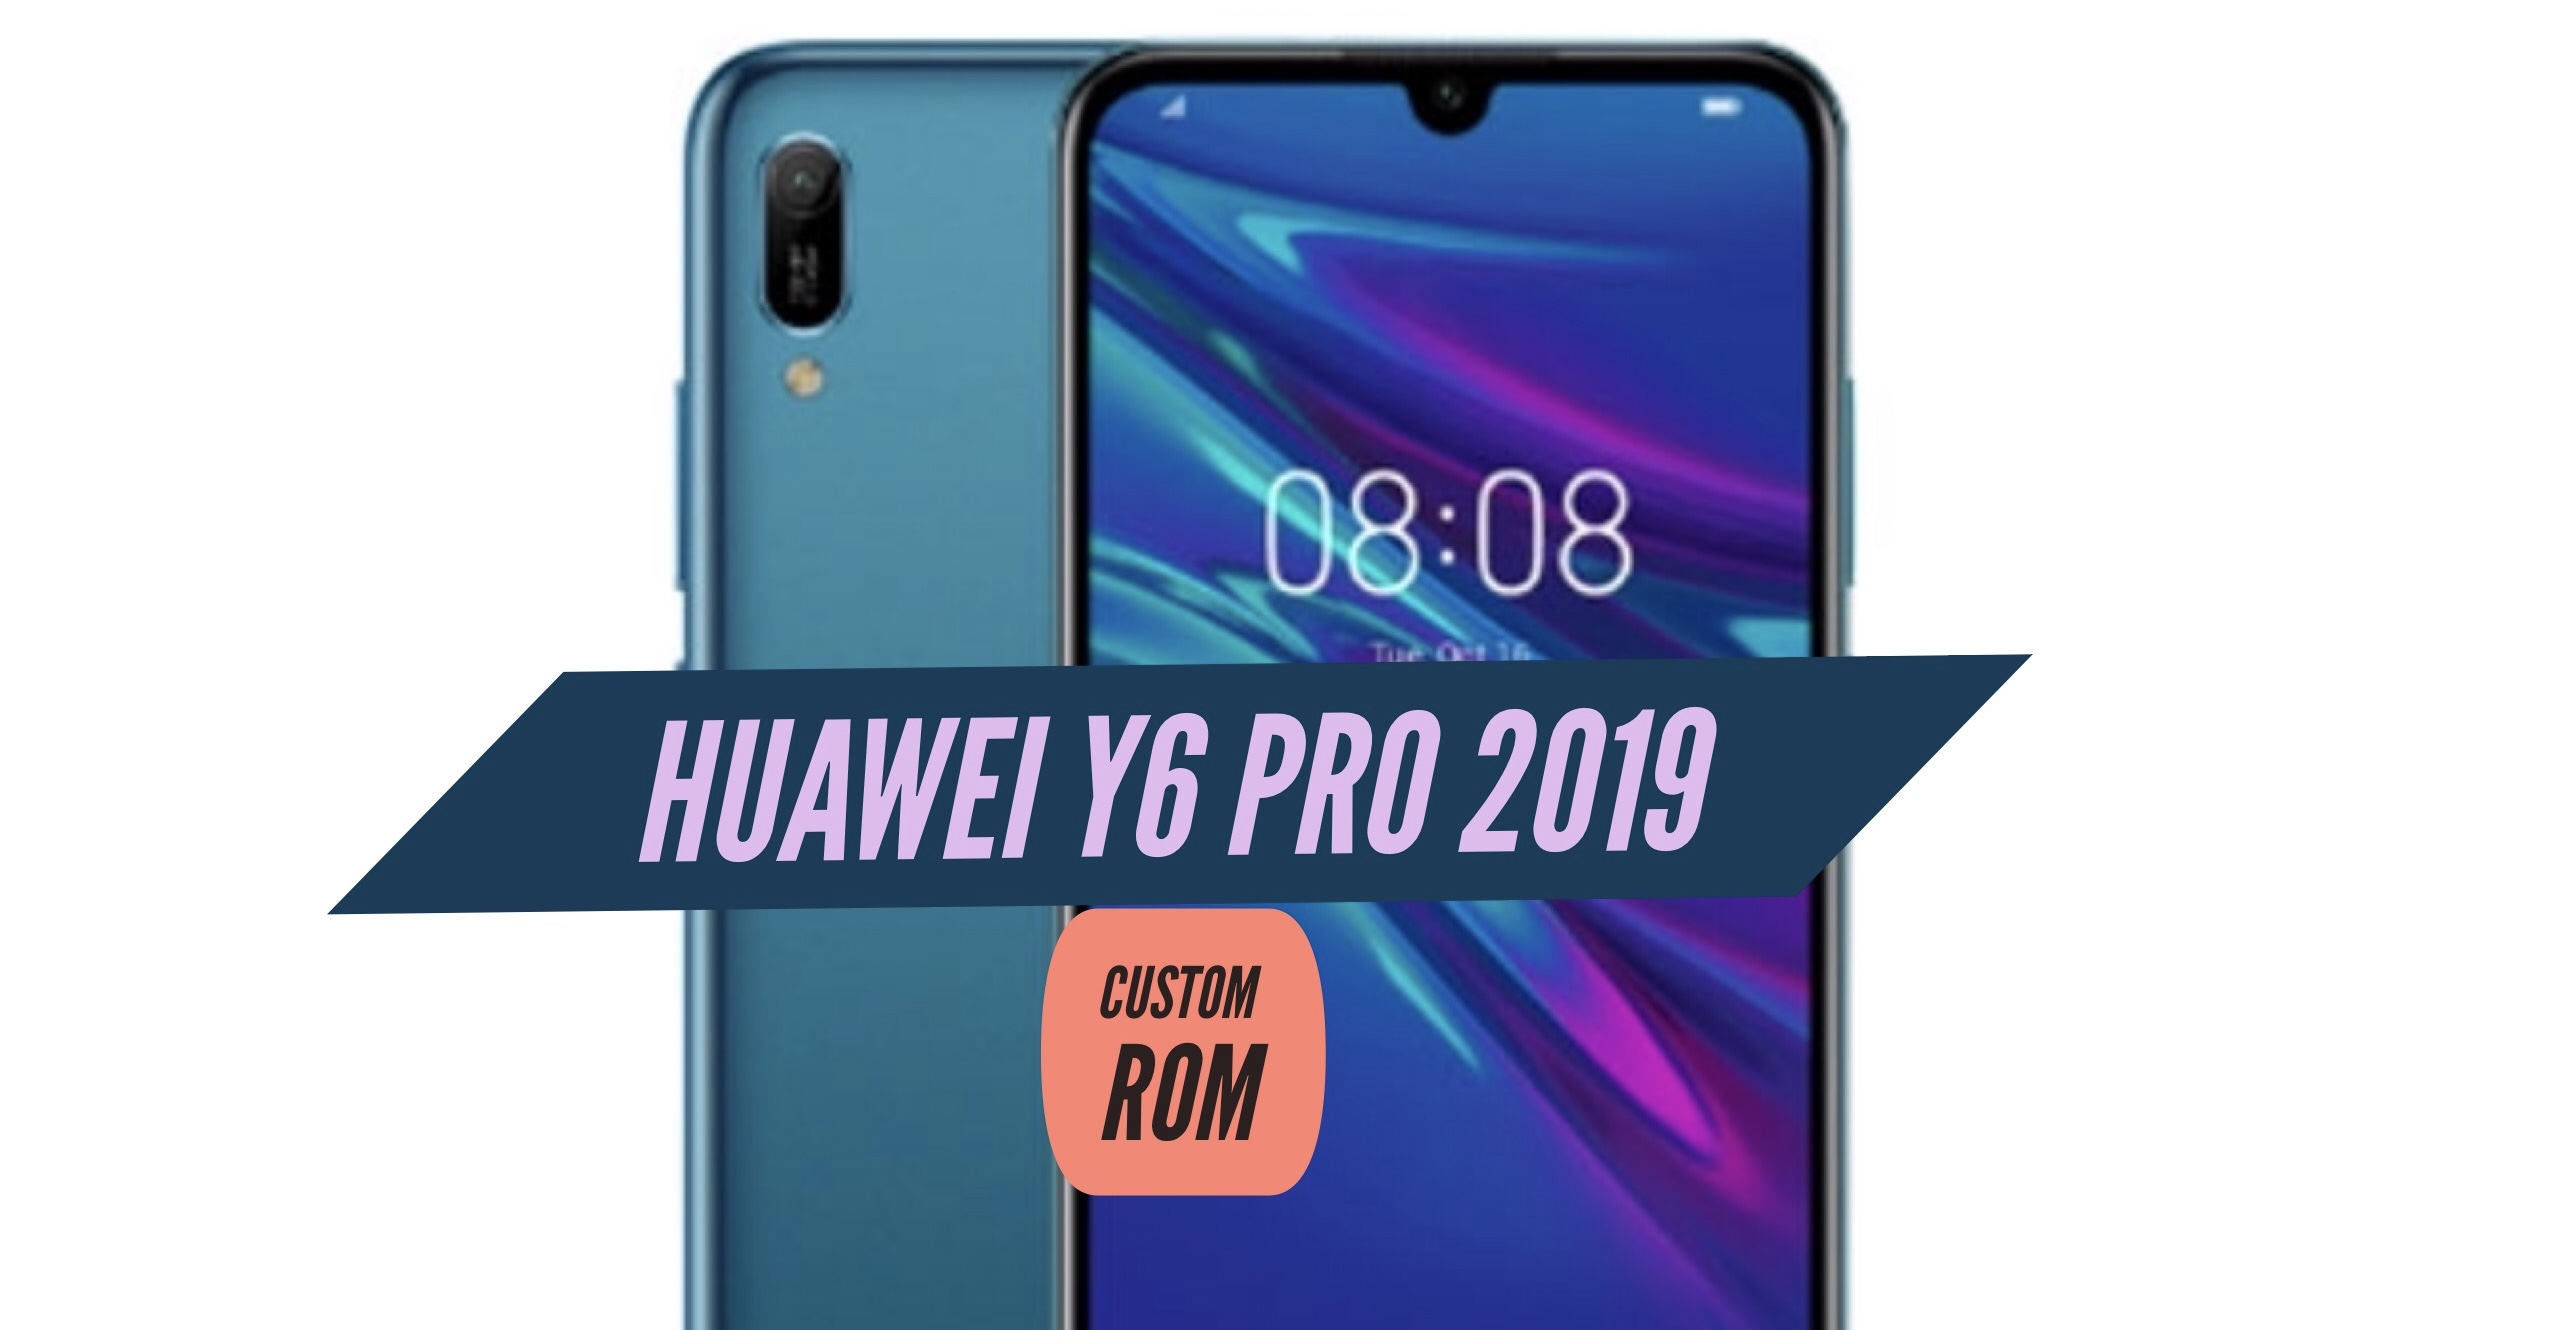 How to Install Custom ROM on Huawei Y6 Pro 2019 : CWM & TWRP